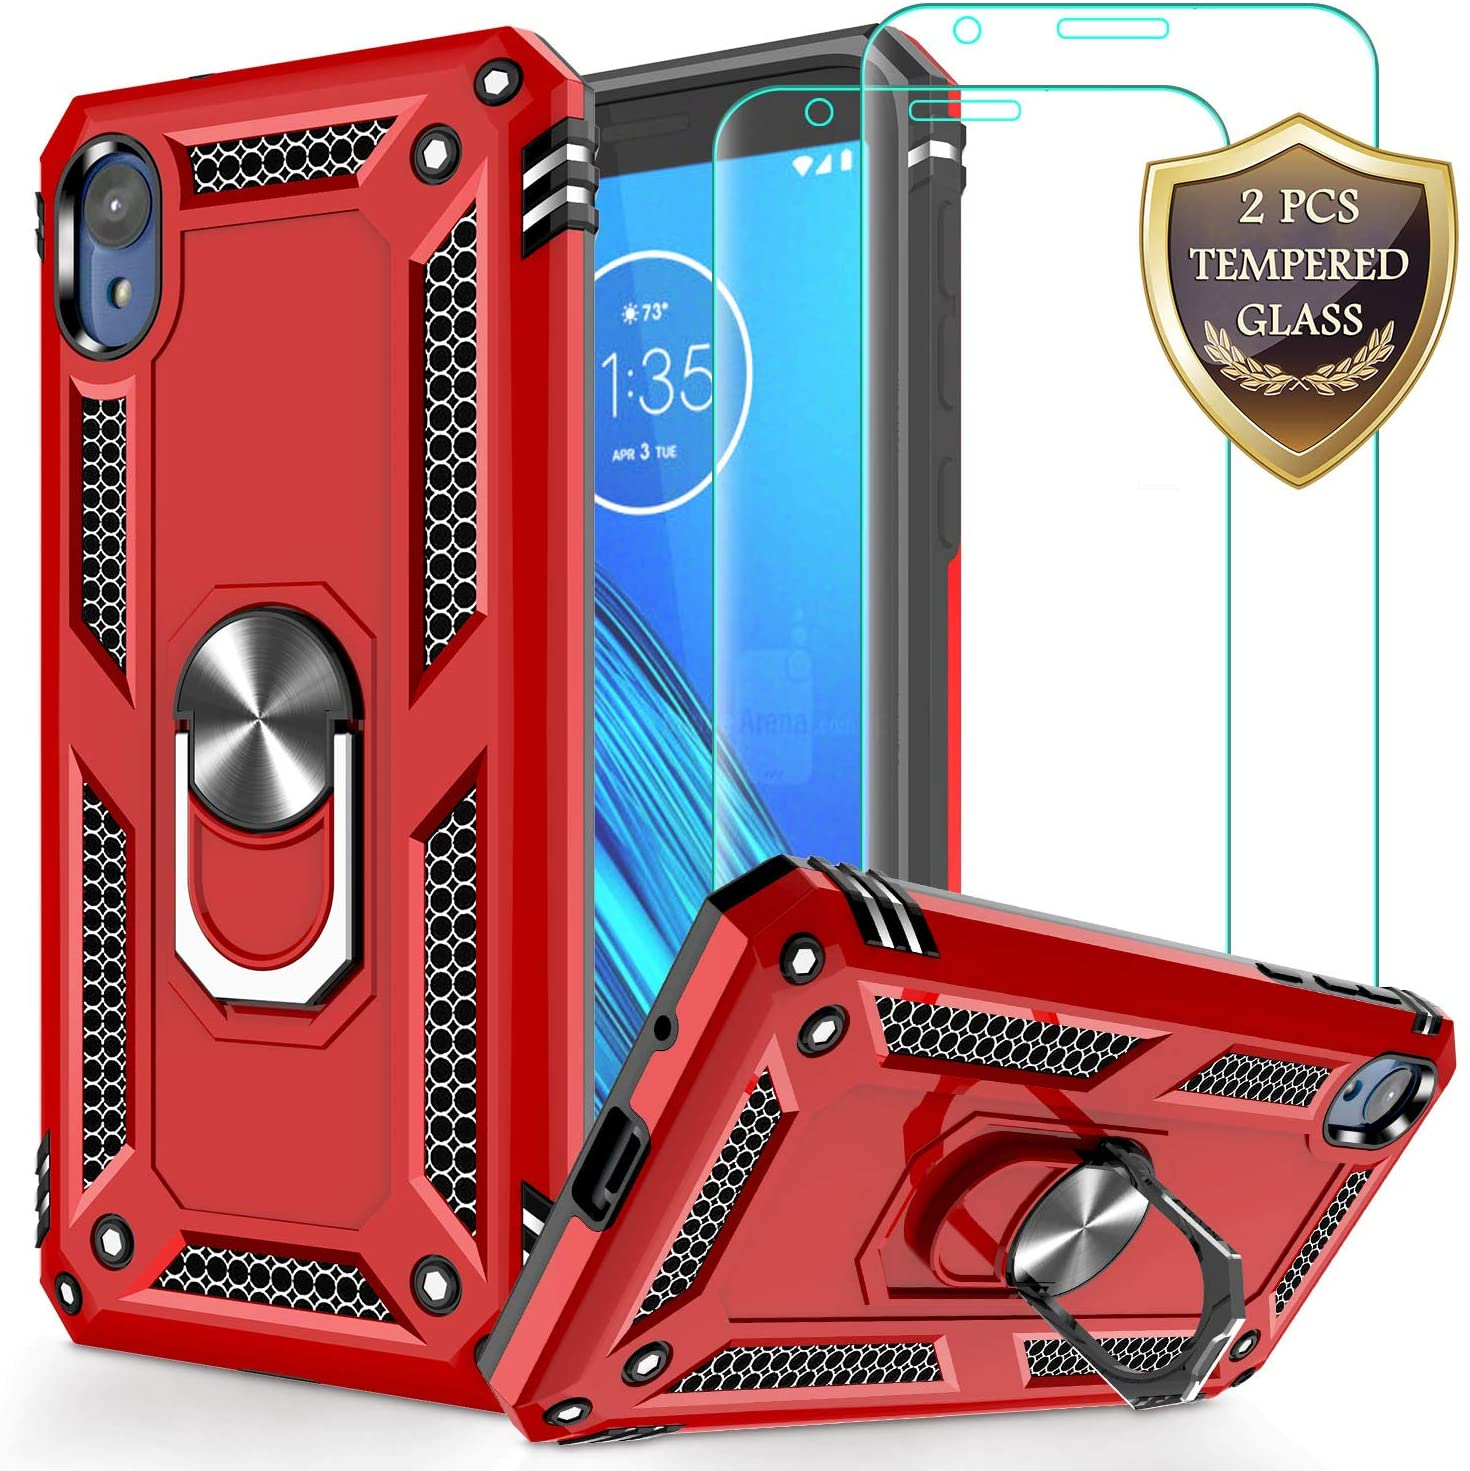 Moto E6 Case with Tempered Glass Screen Protector [2Pack], Jshru Military Grade Ring Car Mount Kickstand Phone Case For Motorola Moto E6 Red